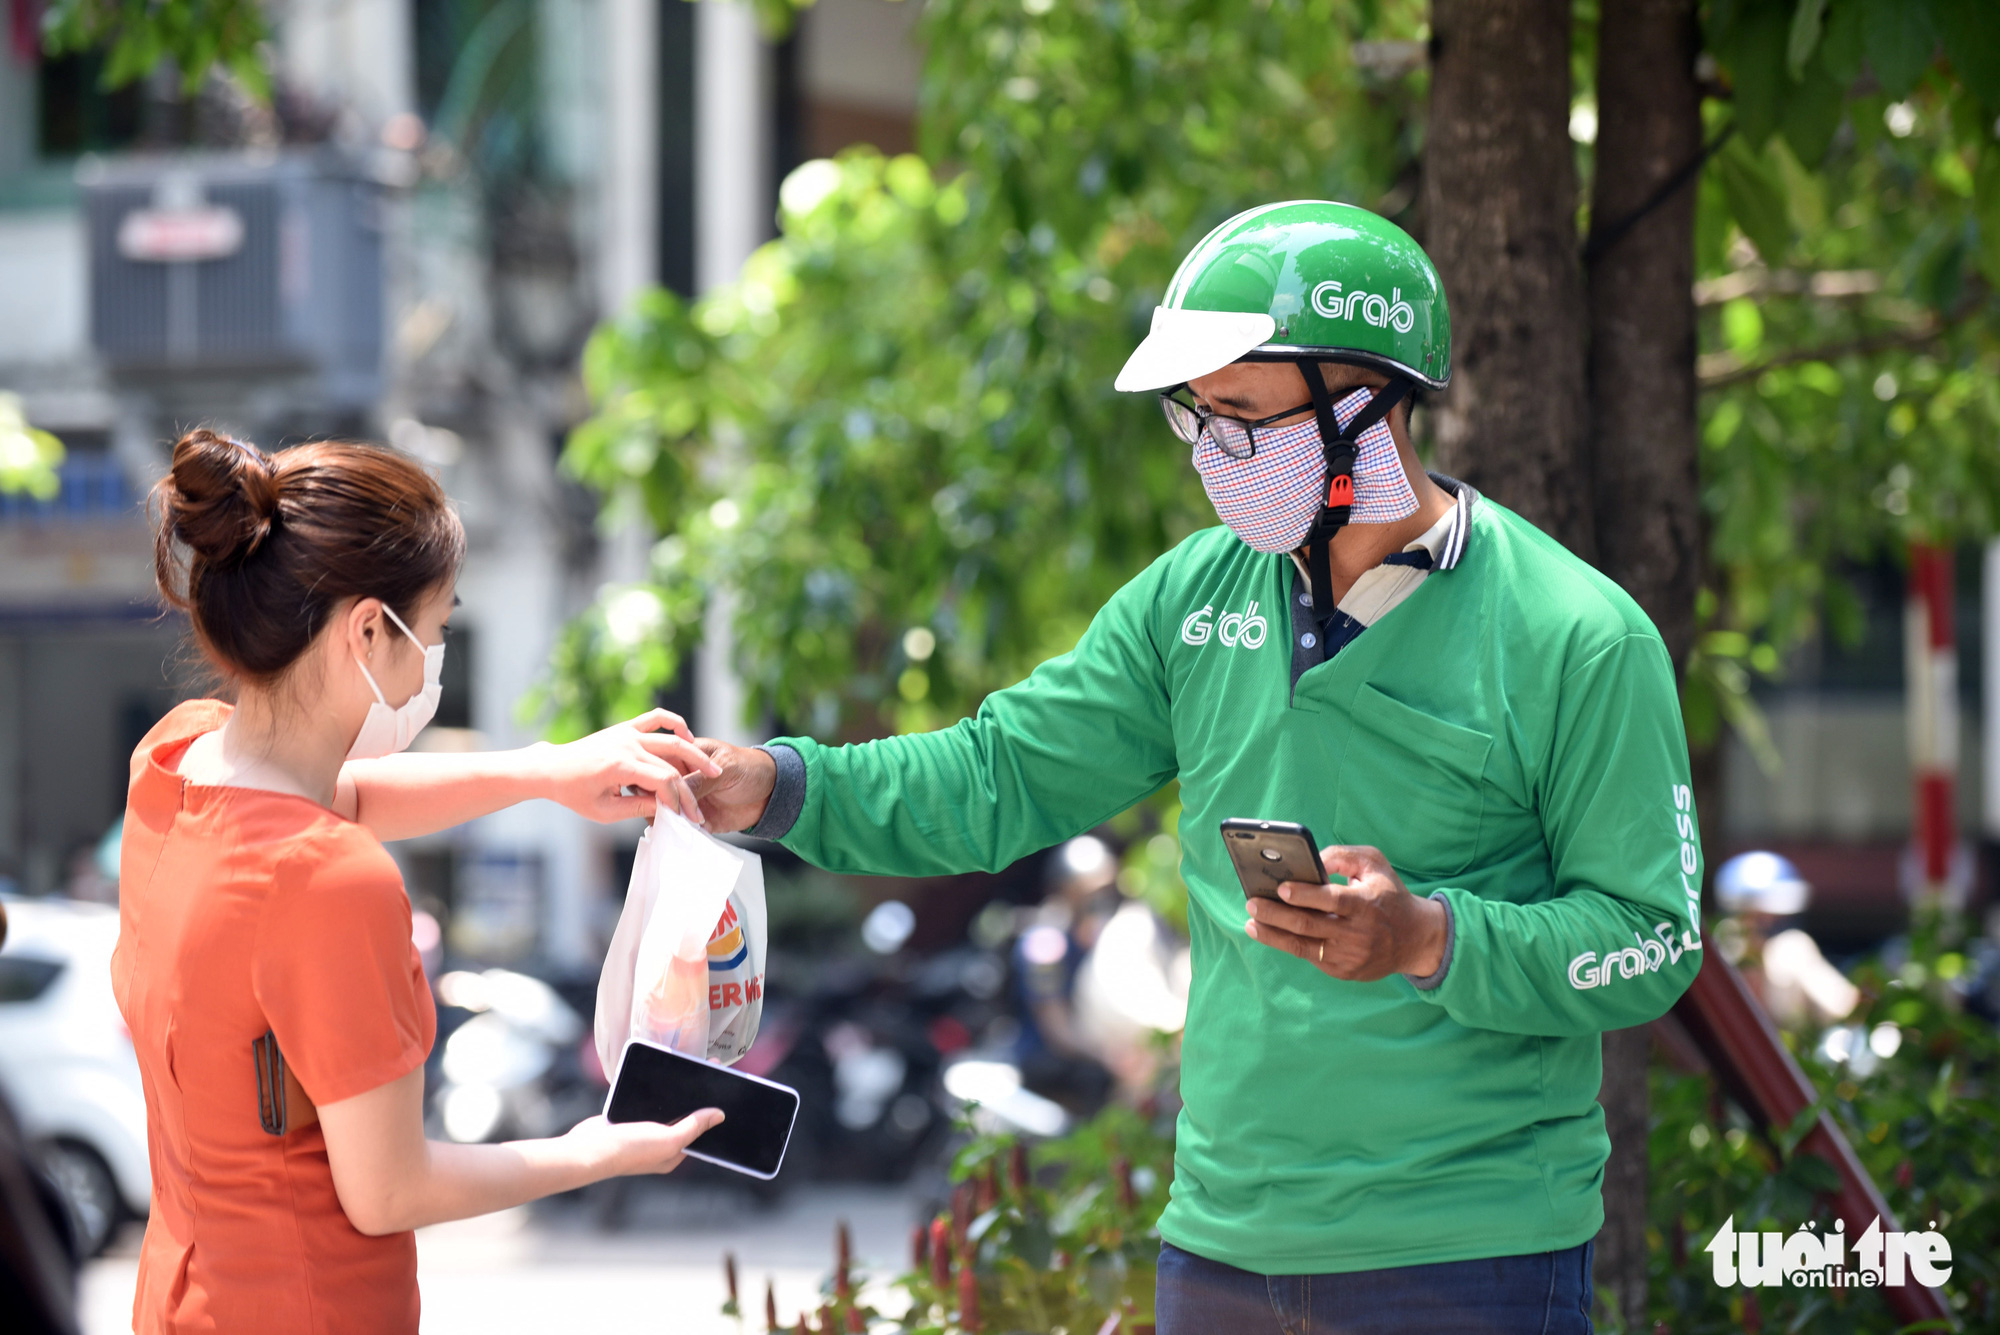 An office worker receives ordered food from a Grab delivery driver in Ho Chi Minh City, Vietnam. Photo: Duyen Phan / Tuoi Tre